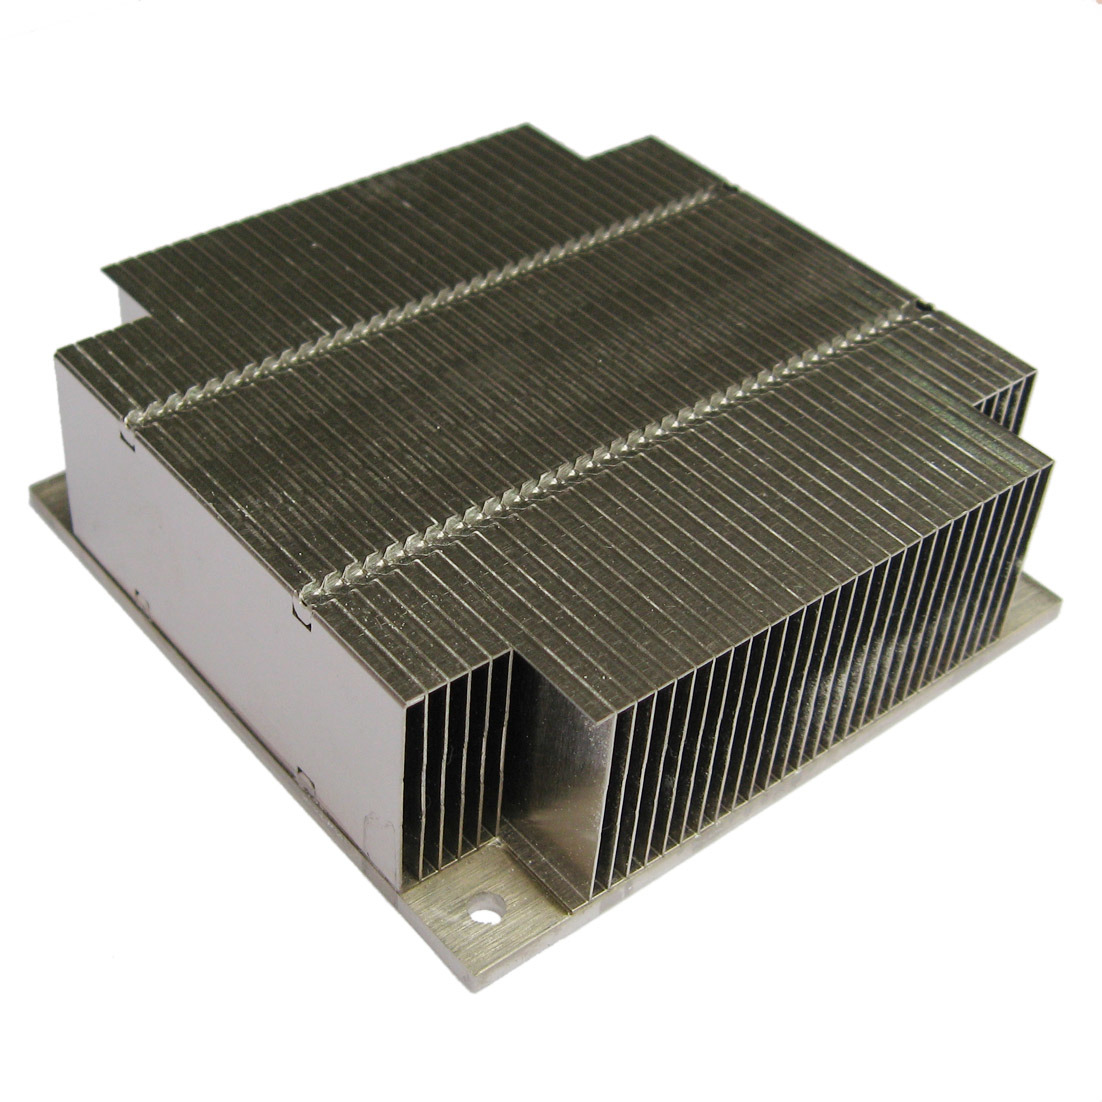 Computer Heat Sink : Heat sink professional china